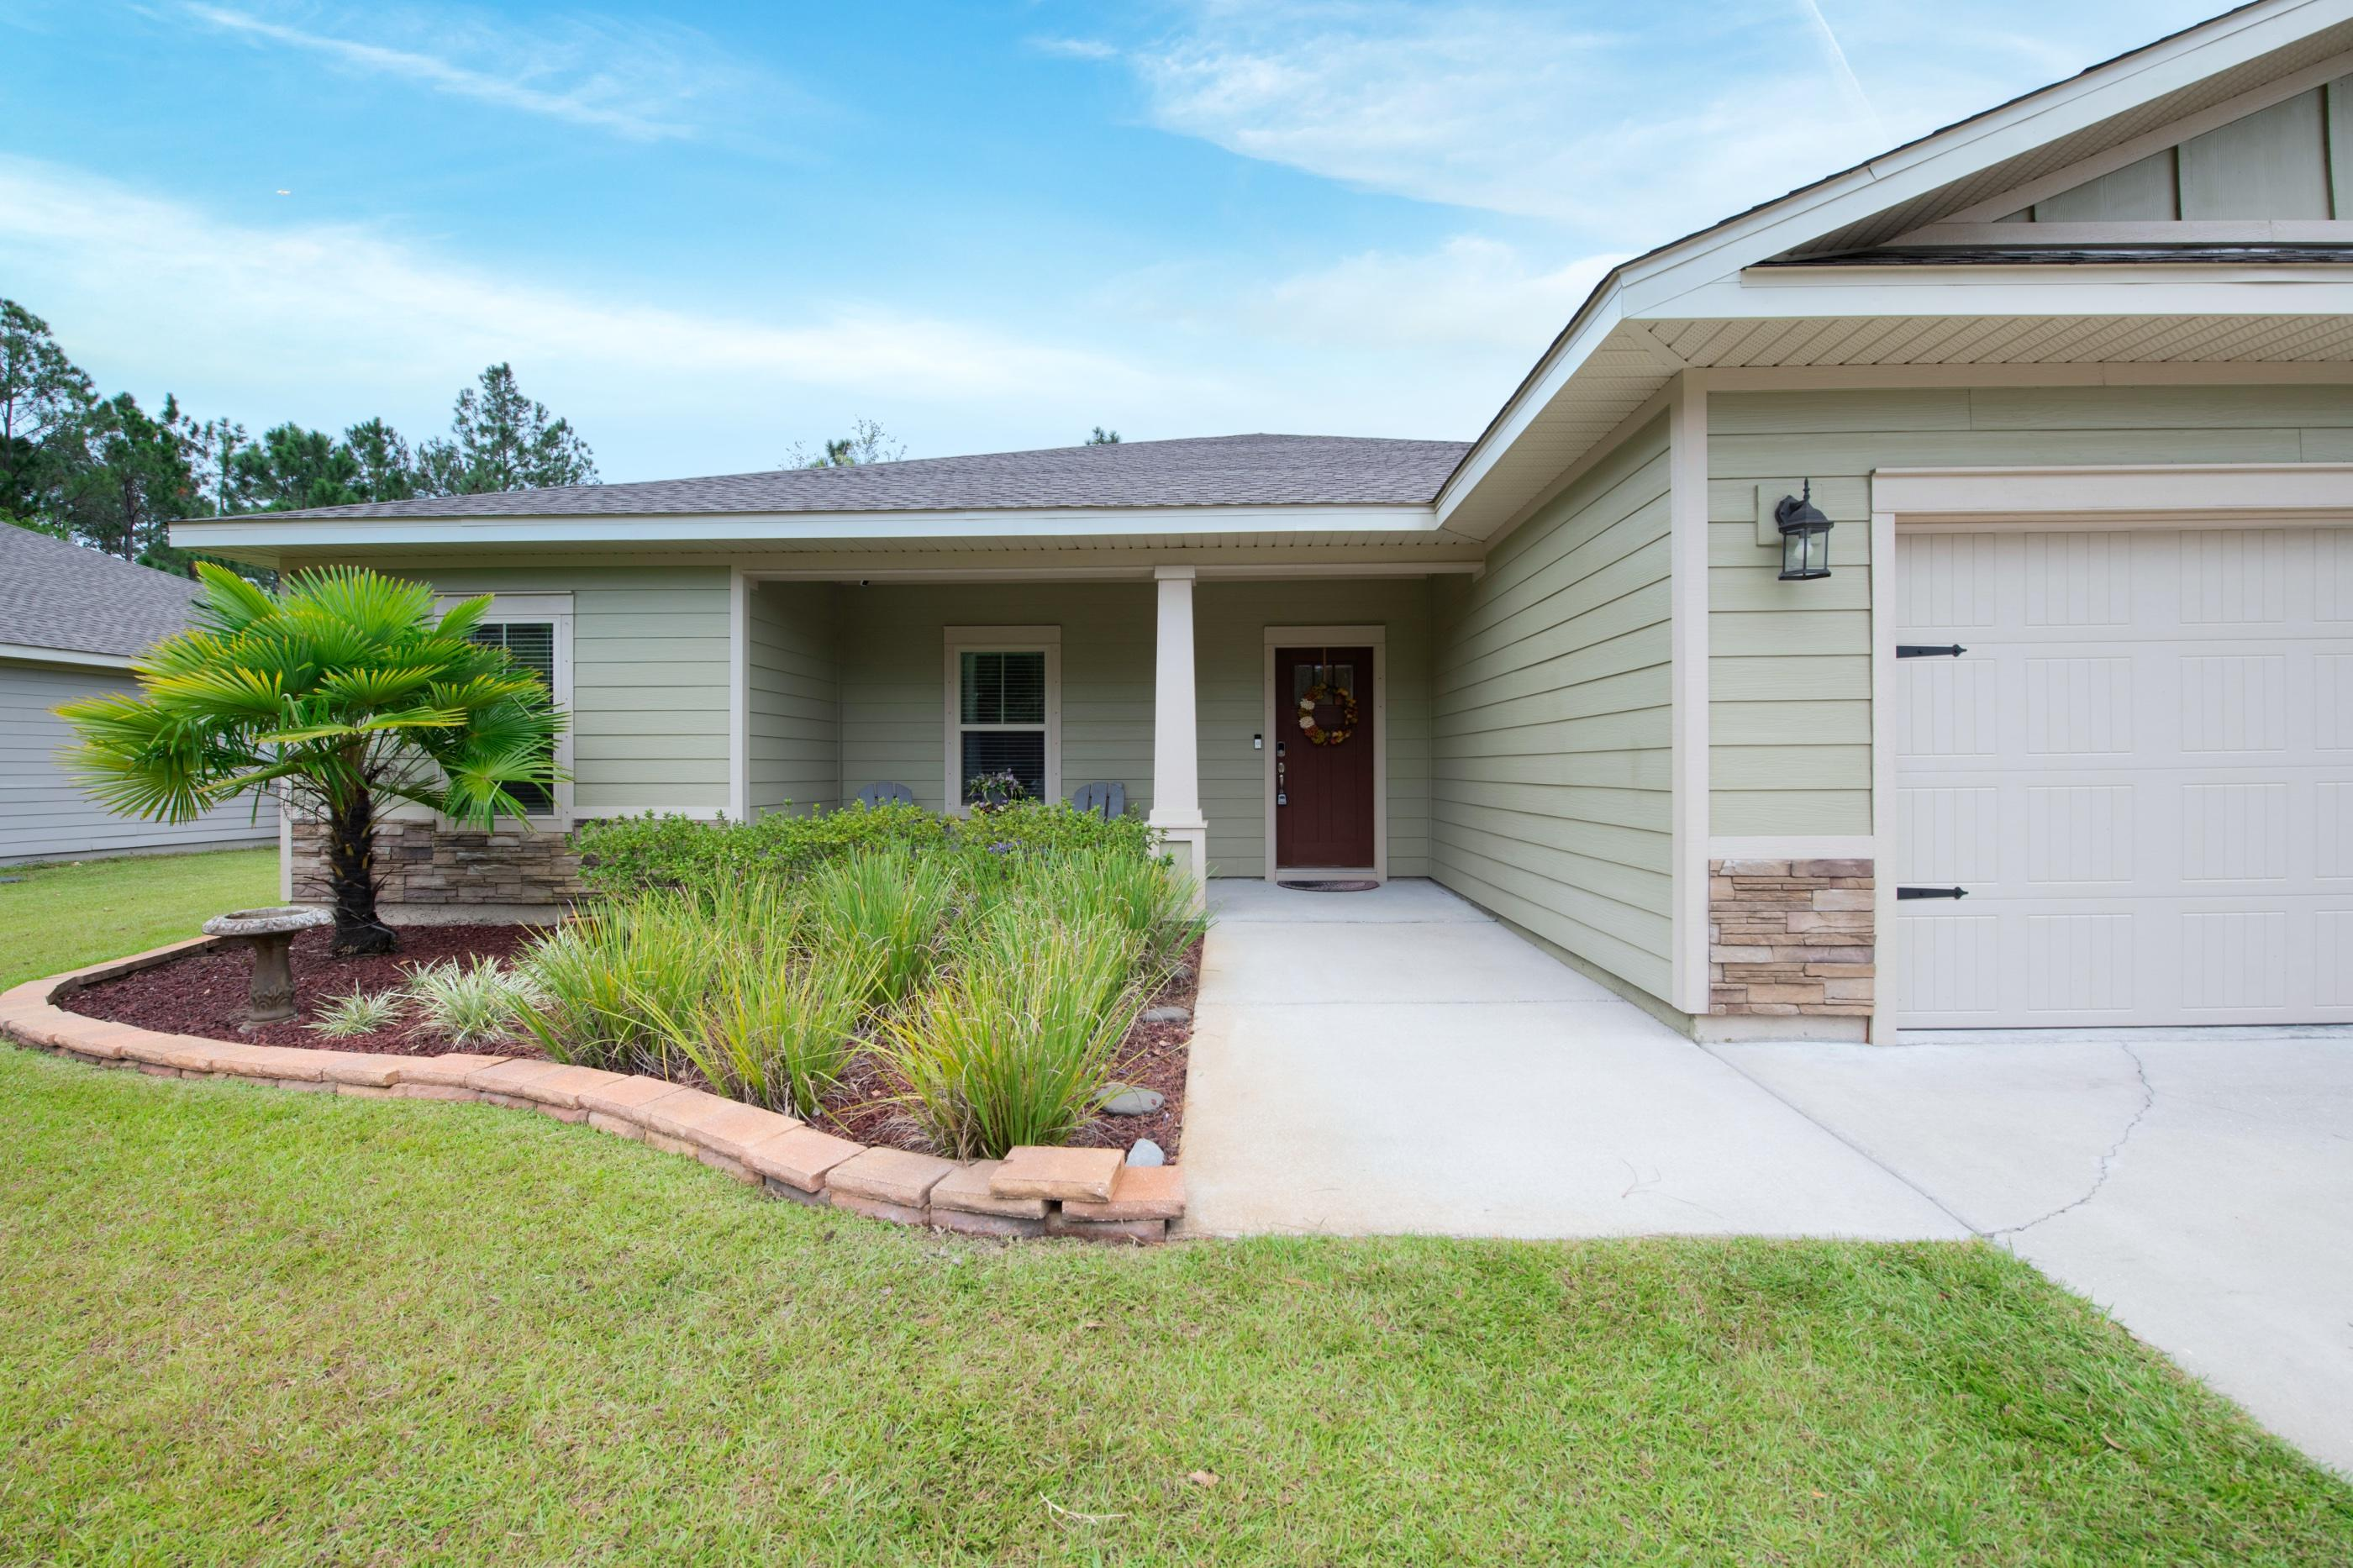 Photo of home for sale at 8257 Verdura, Navarre FL